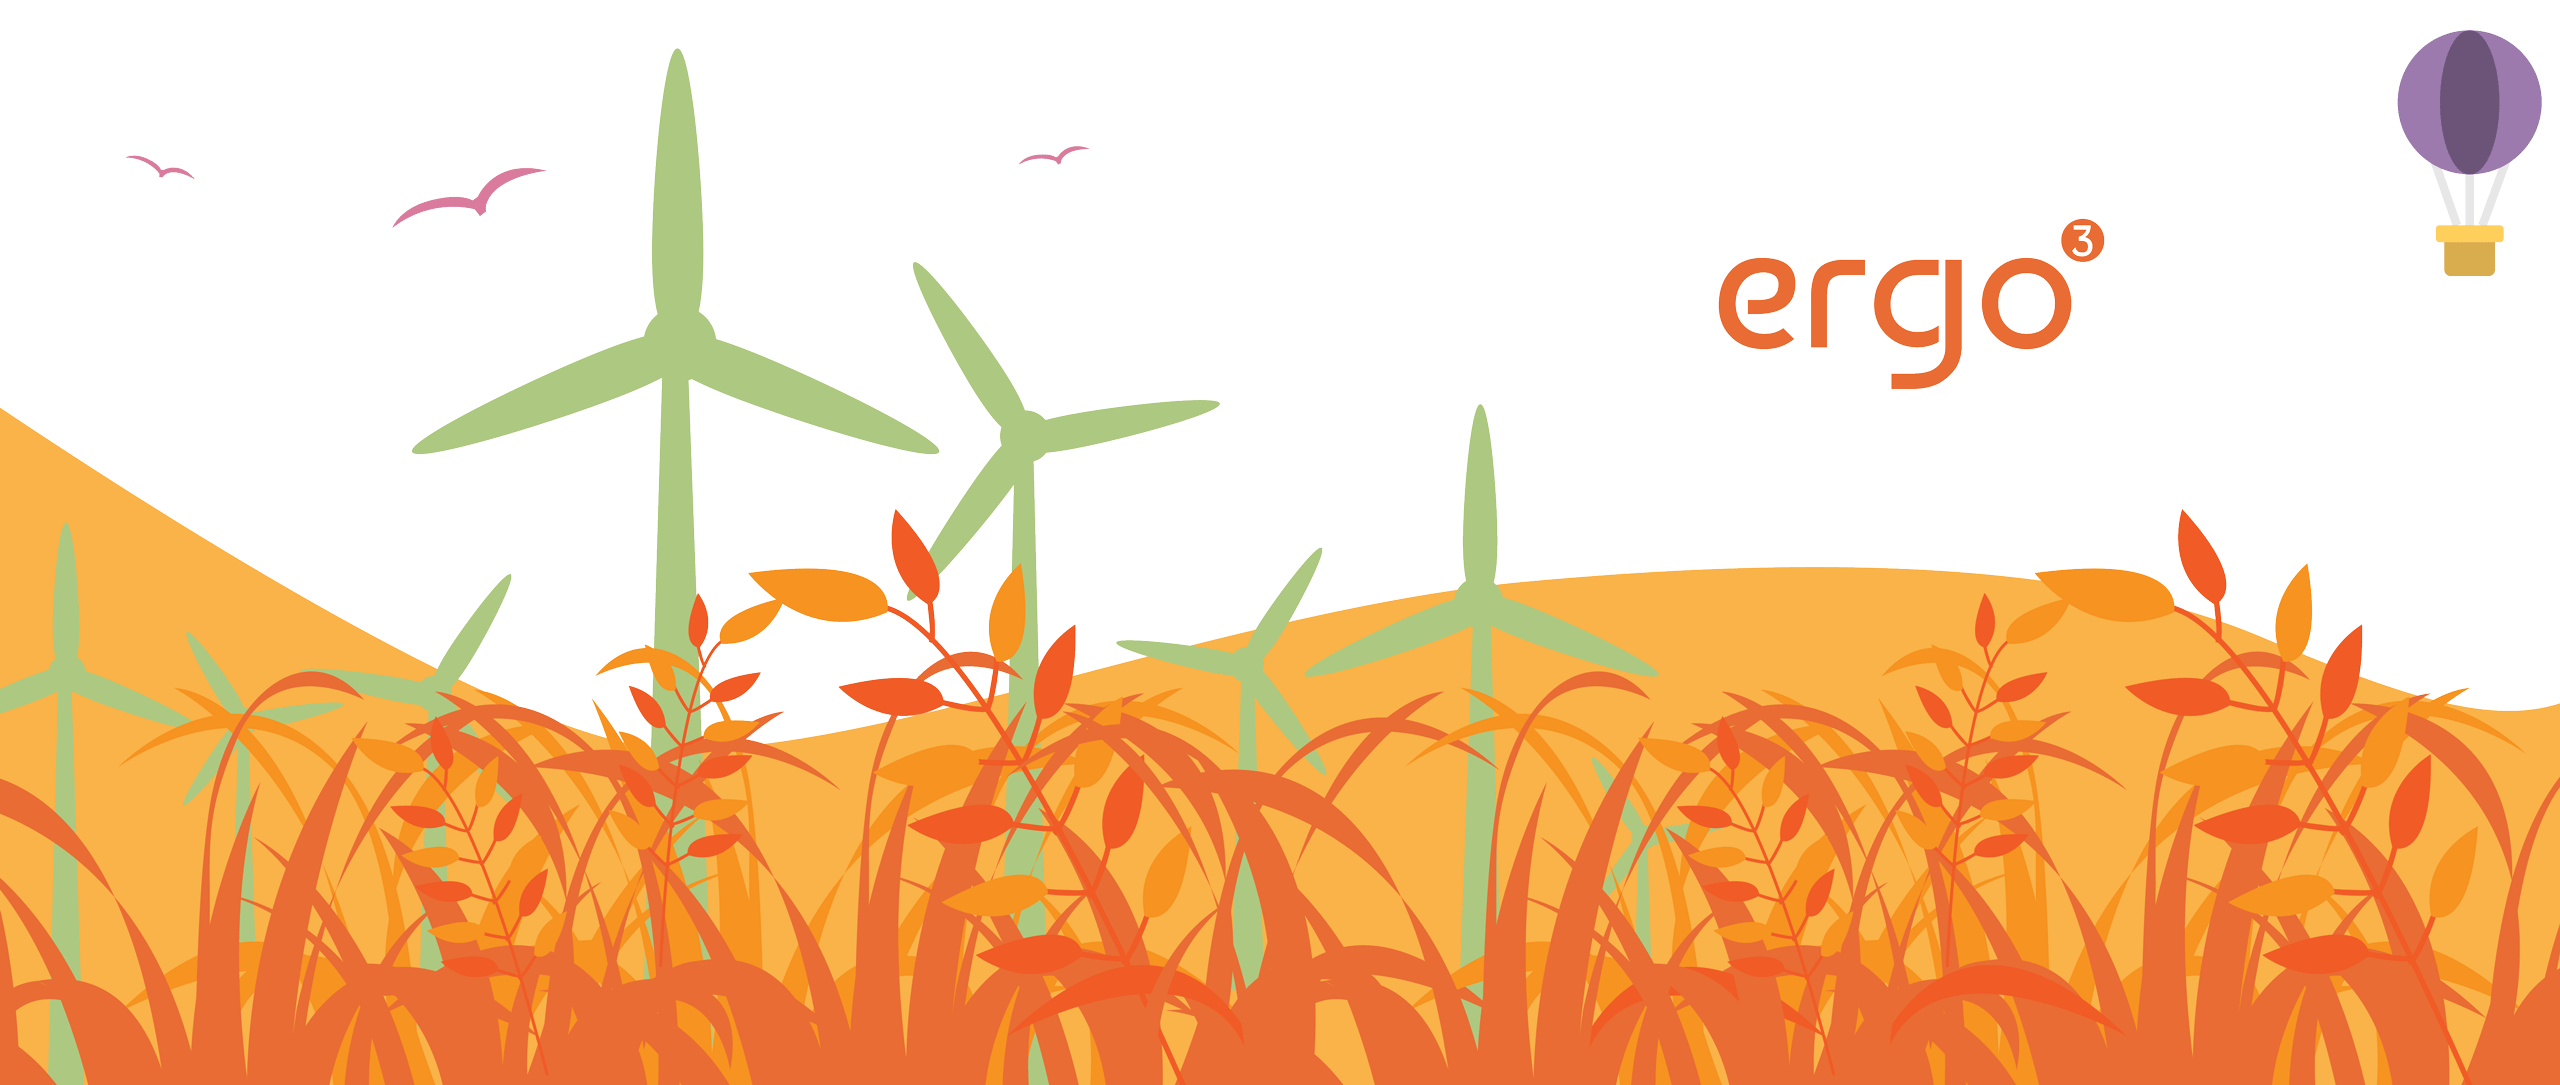 Pumpkin with leaves footer border clipart freeuse library Services - Ergo³ Ltd freeuse library